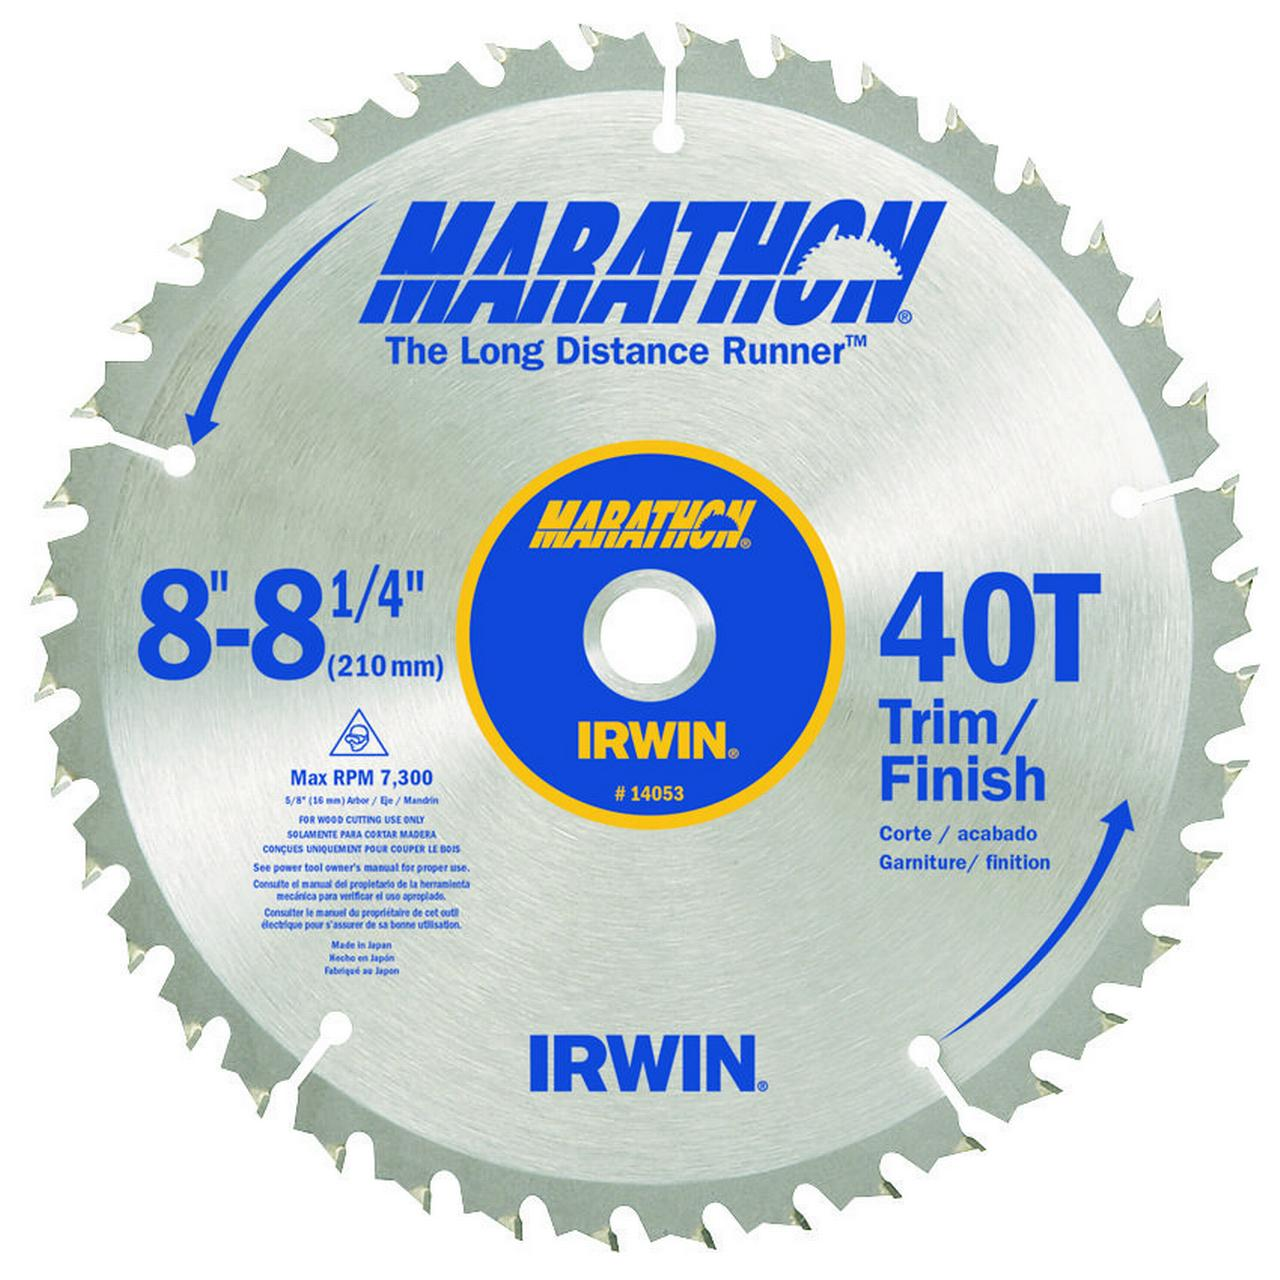 "Irwin Marathon 14053 8-1/4"" 40T Marathon Miter and Table Saw Blades"